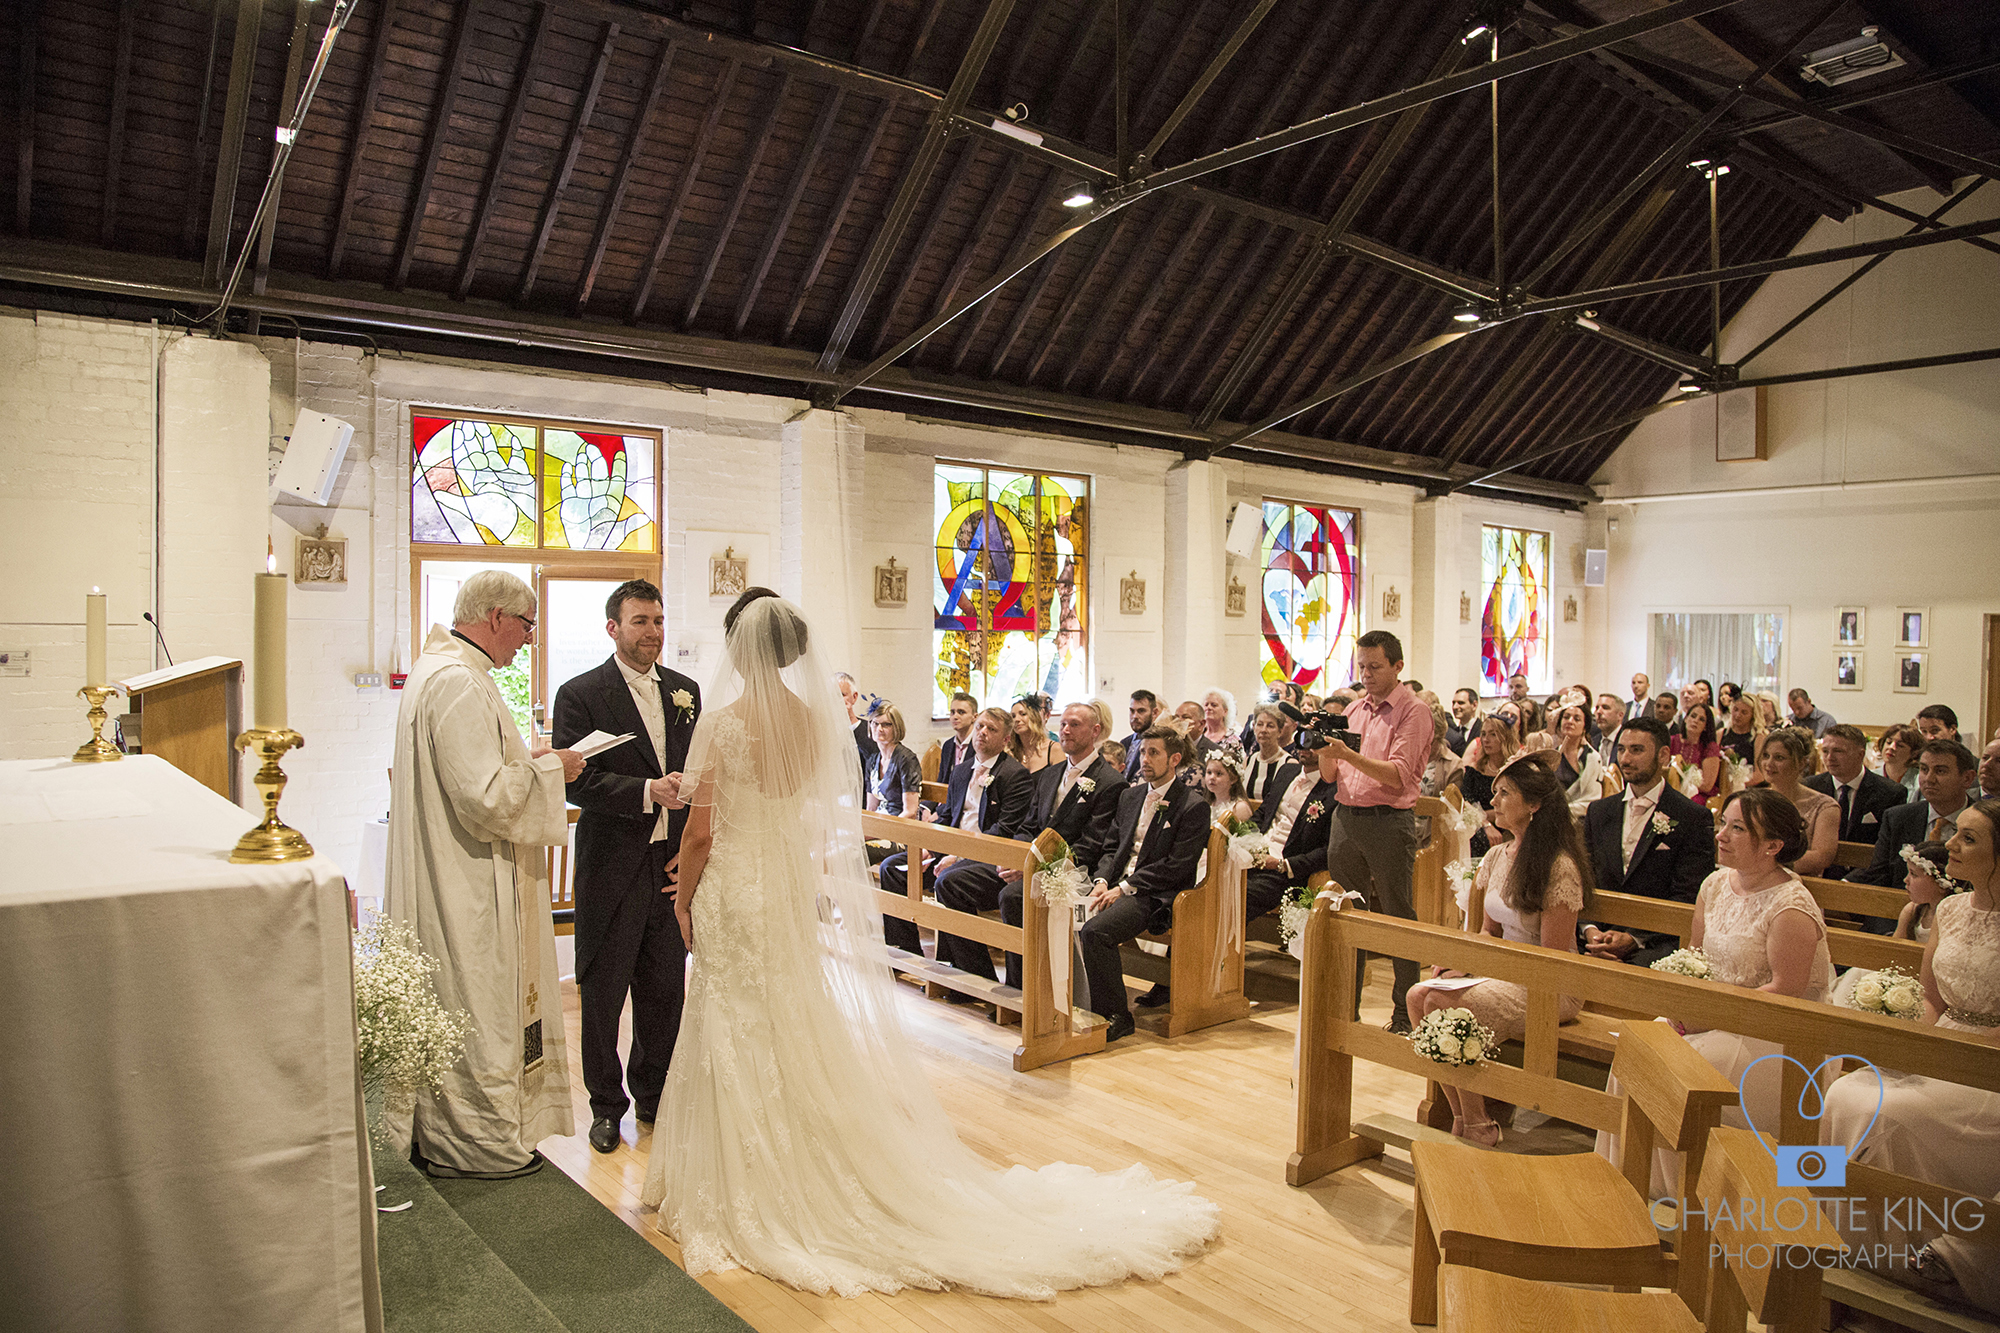 Woldingham-school-wedding-charlotte-king-photography (72)